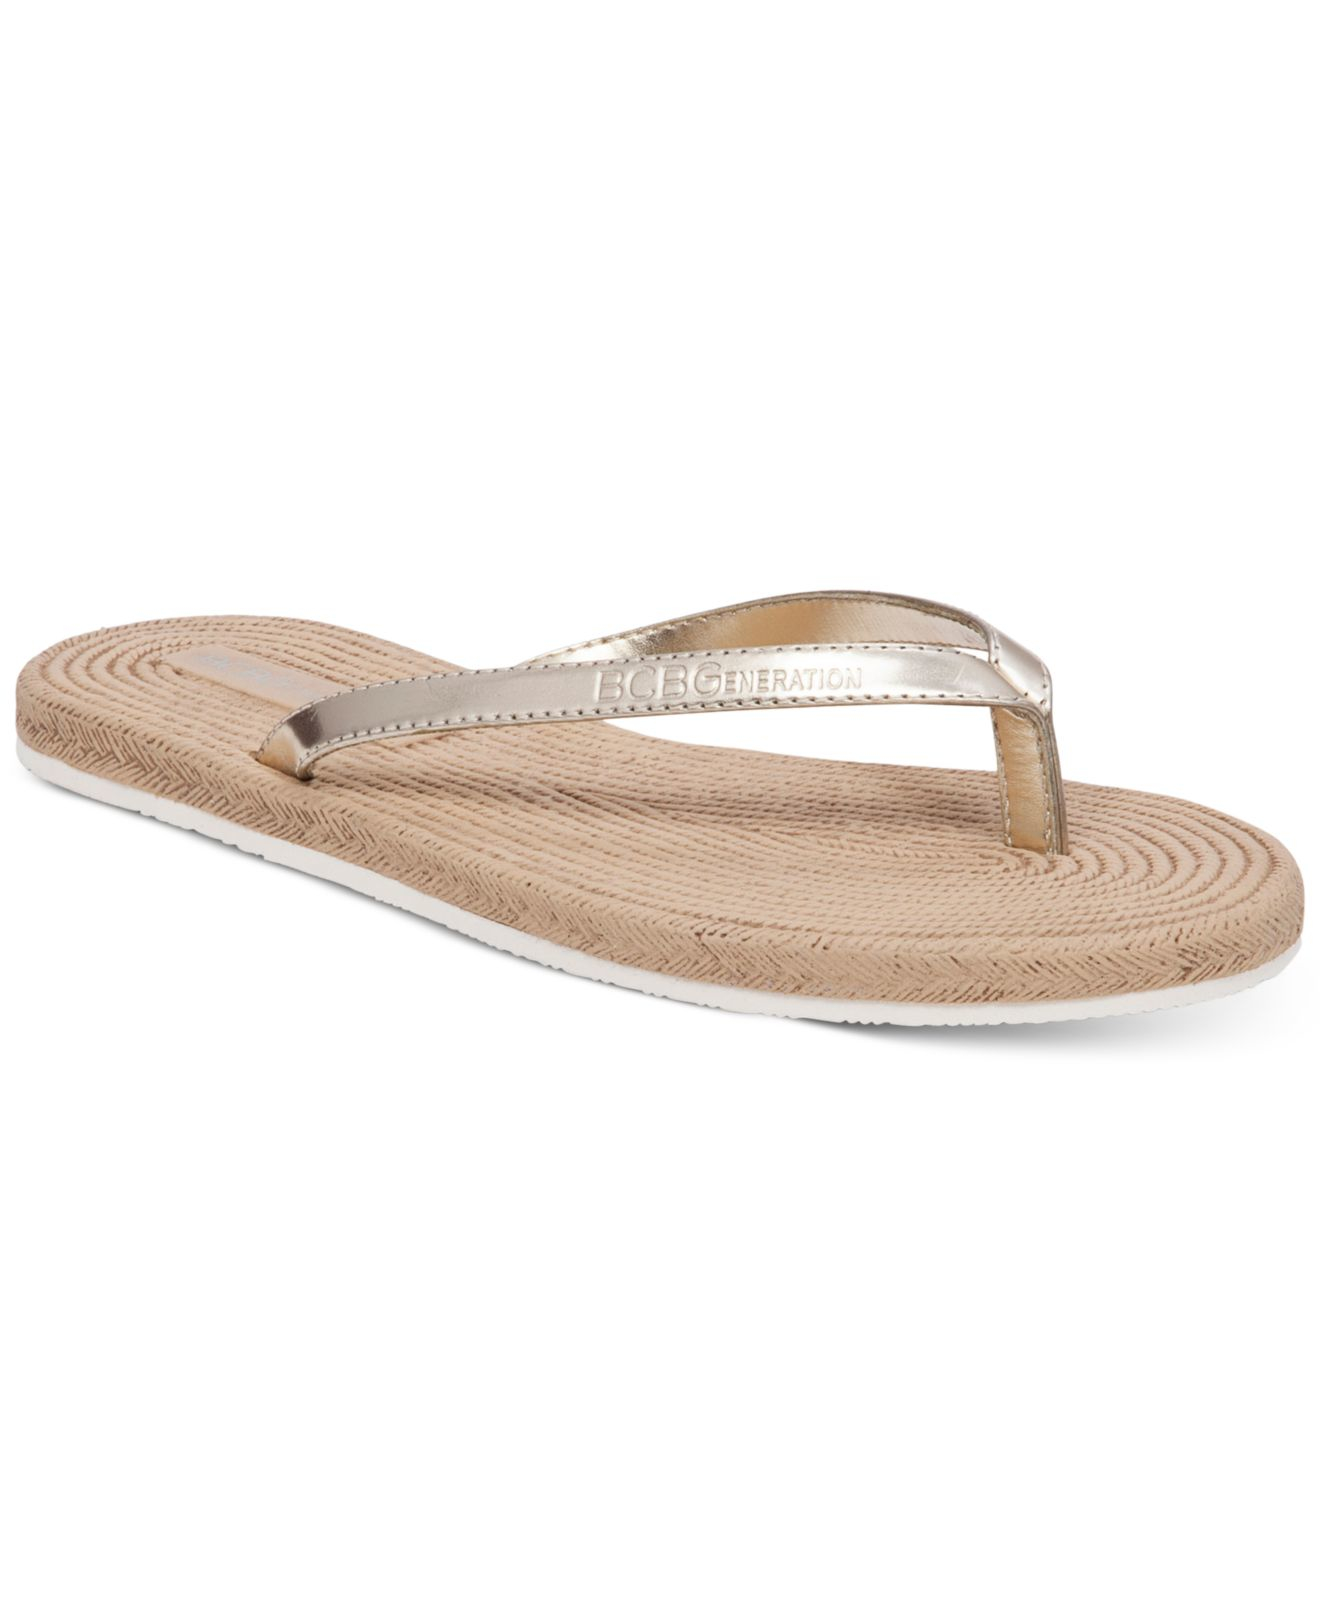 Bcbgeneration Yolo Flat Sandals In Silver Gold Patent